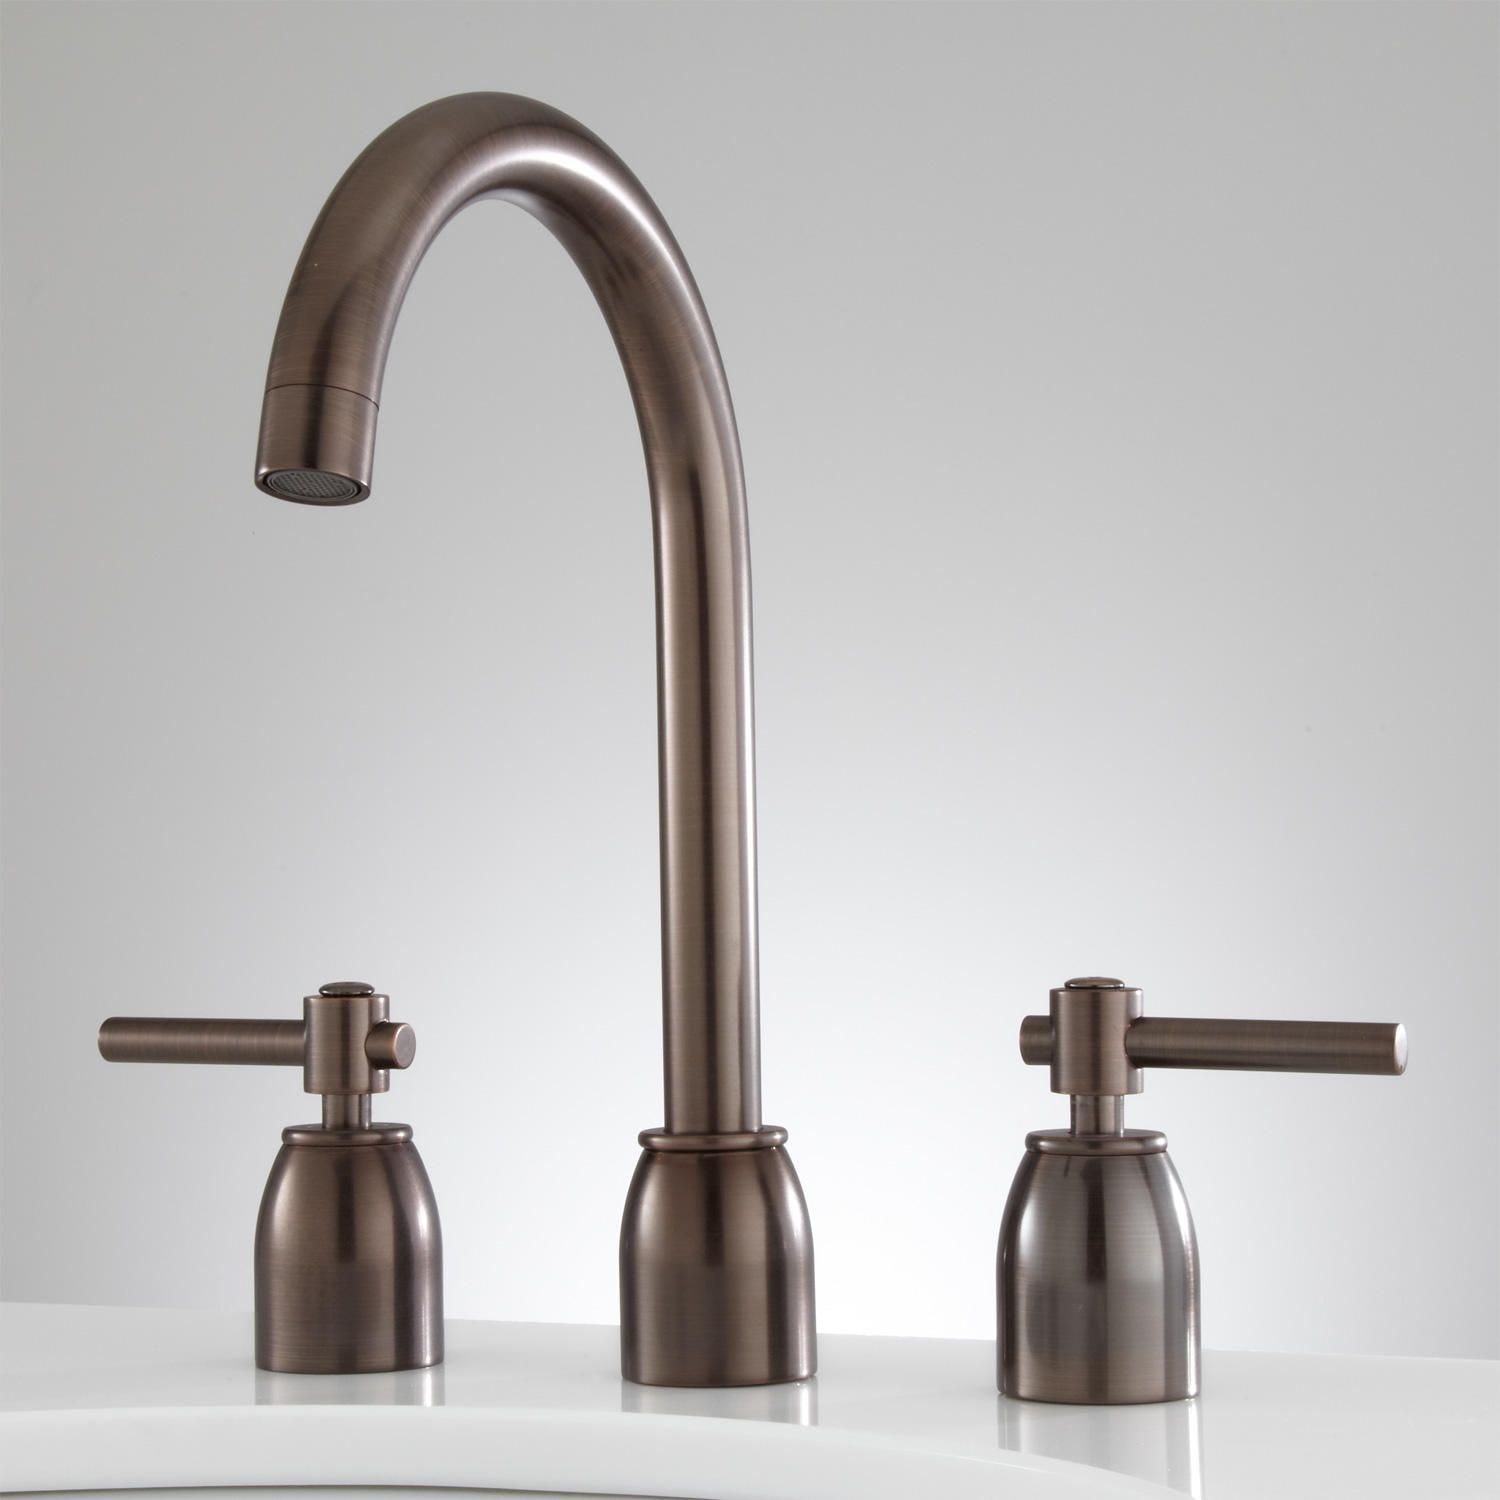 Cortland Widespread Bathroom Faucet No Overflow Oil Rubbed